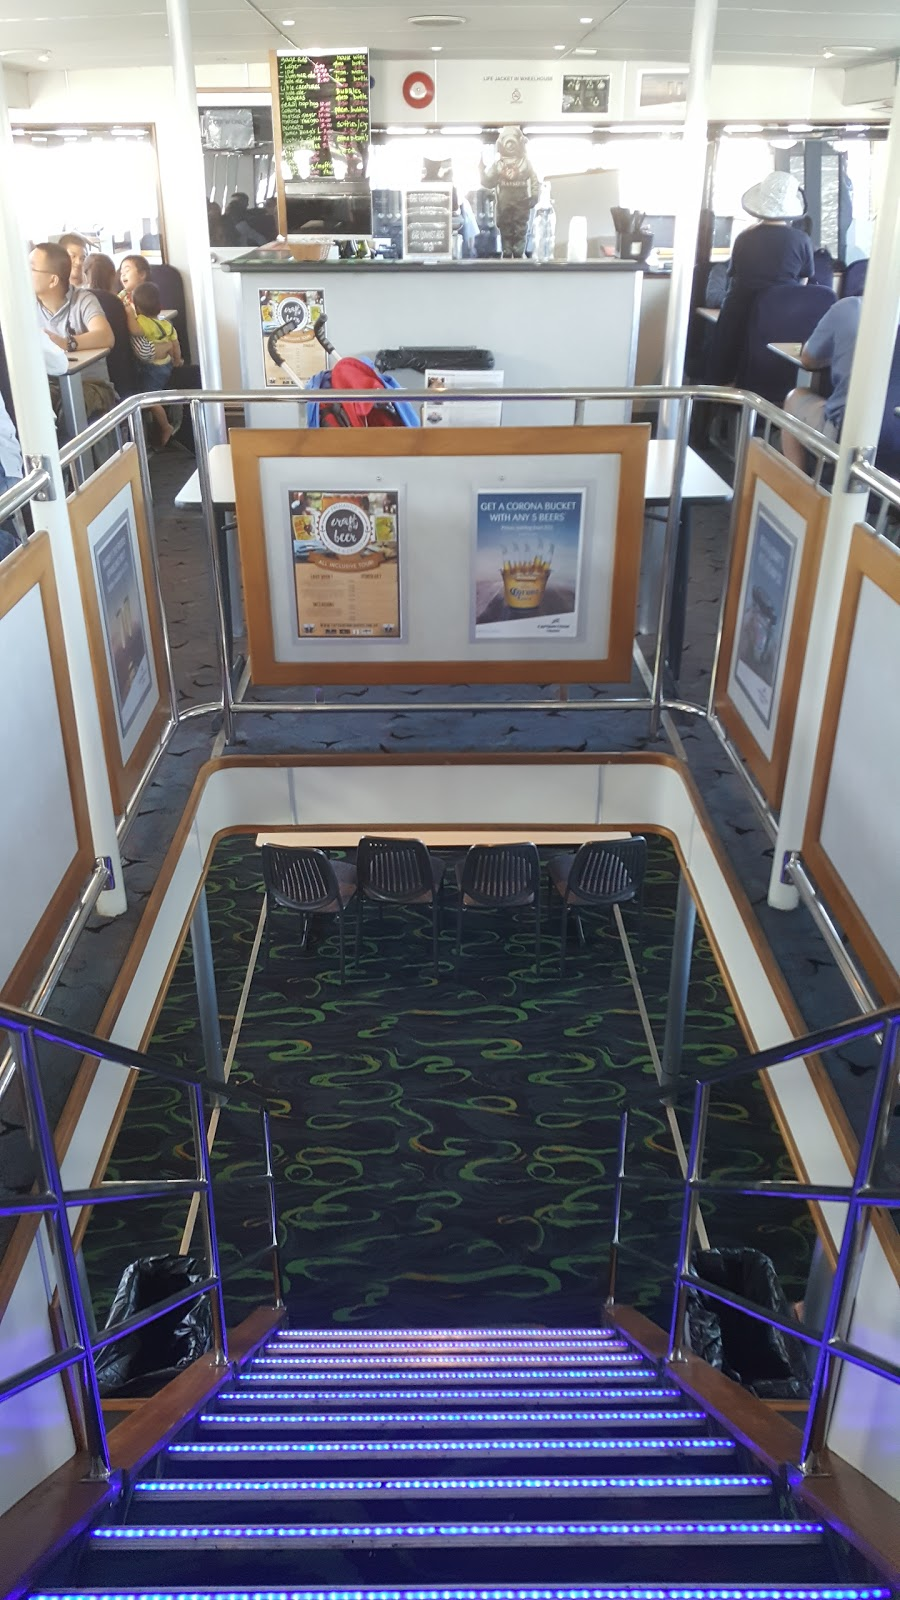 Captain Cook Cruises - Perth | travel agency | Barrack Street Jetty, 3 Riverside Dr, Perth WA 6000, Australia | 0893253341 OR +61 8 9325 3341